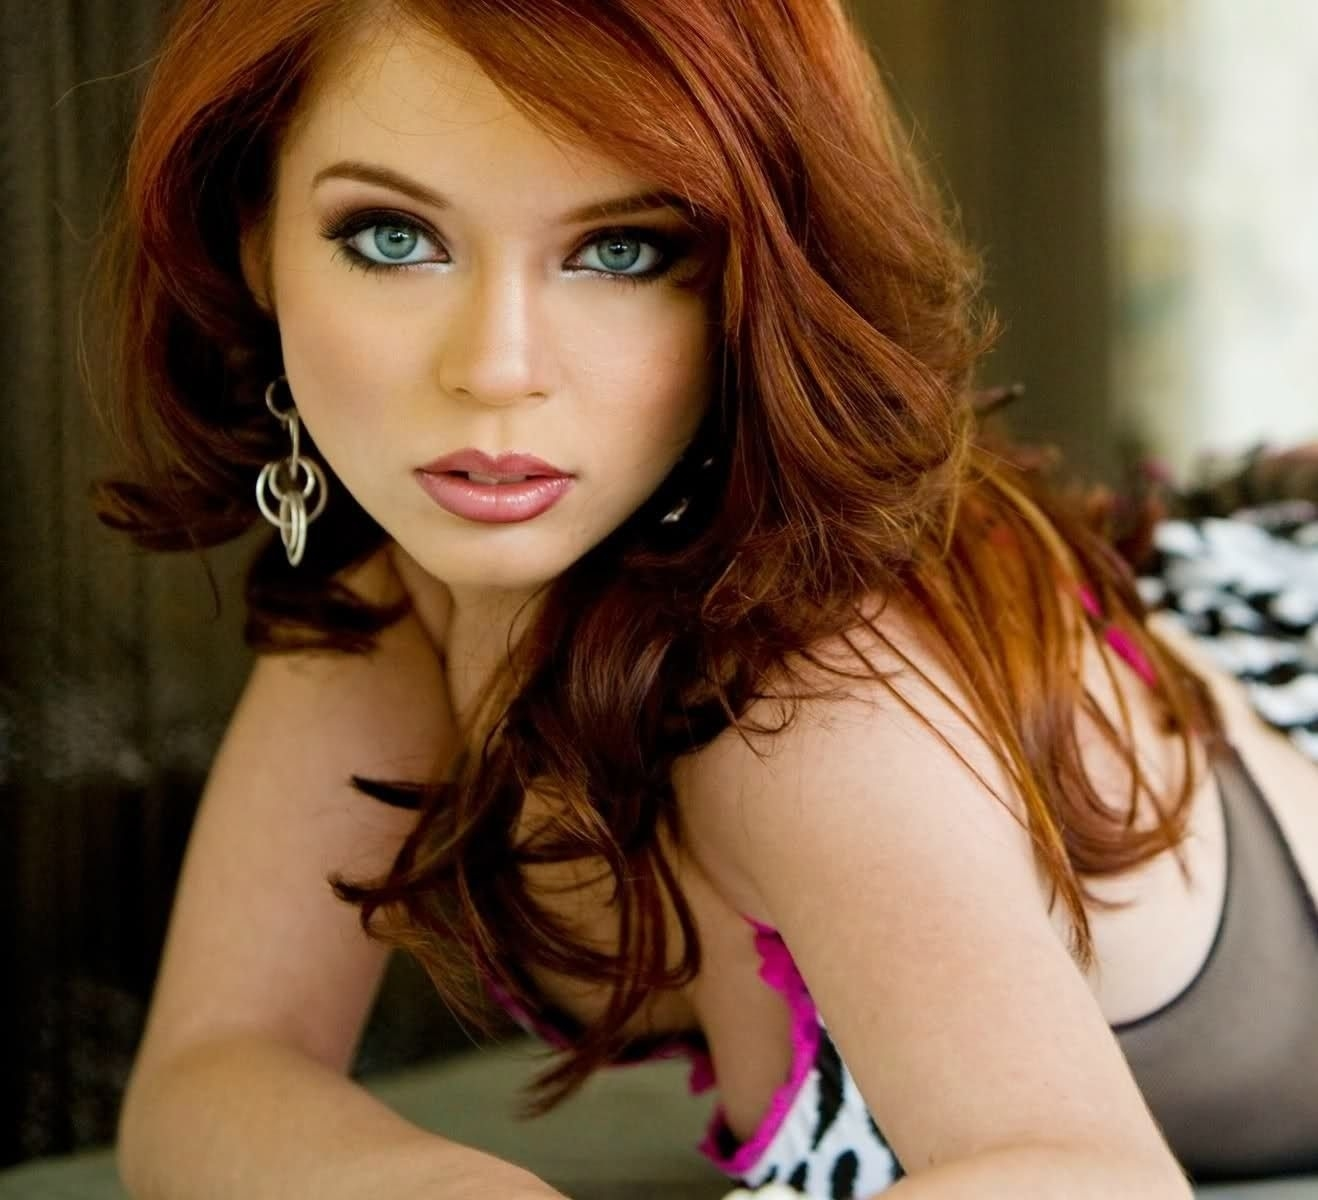 best makeup colors for red hair and hazel eyes - wavy haircut